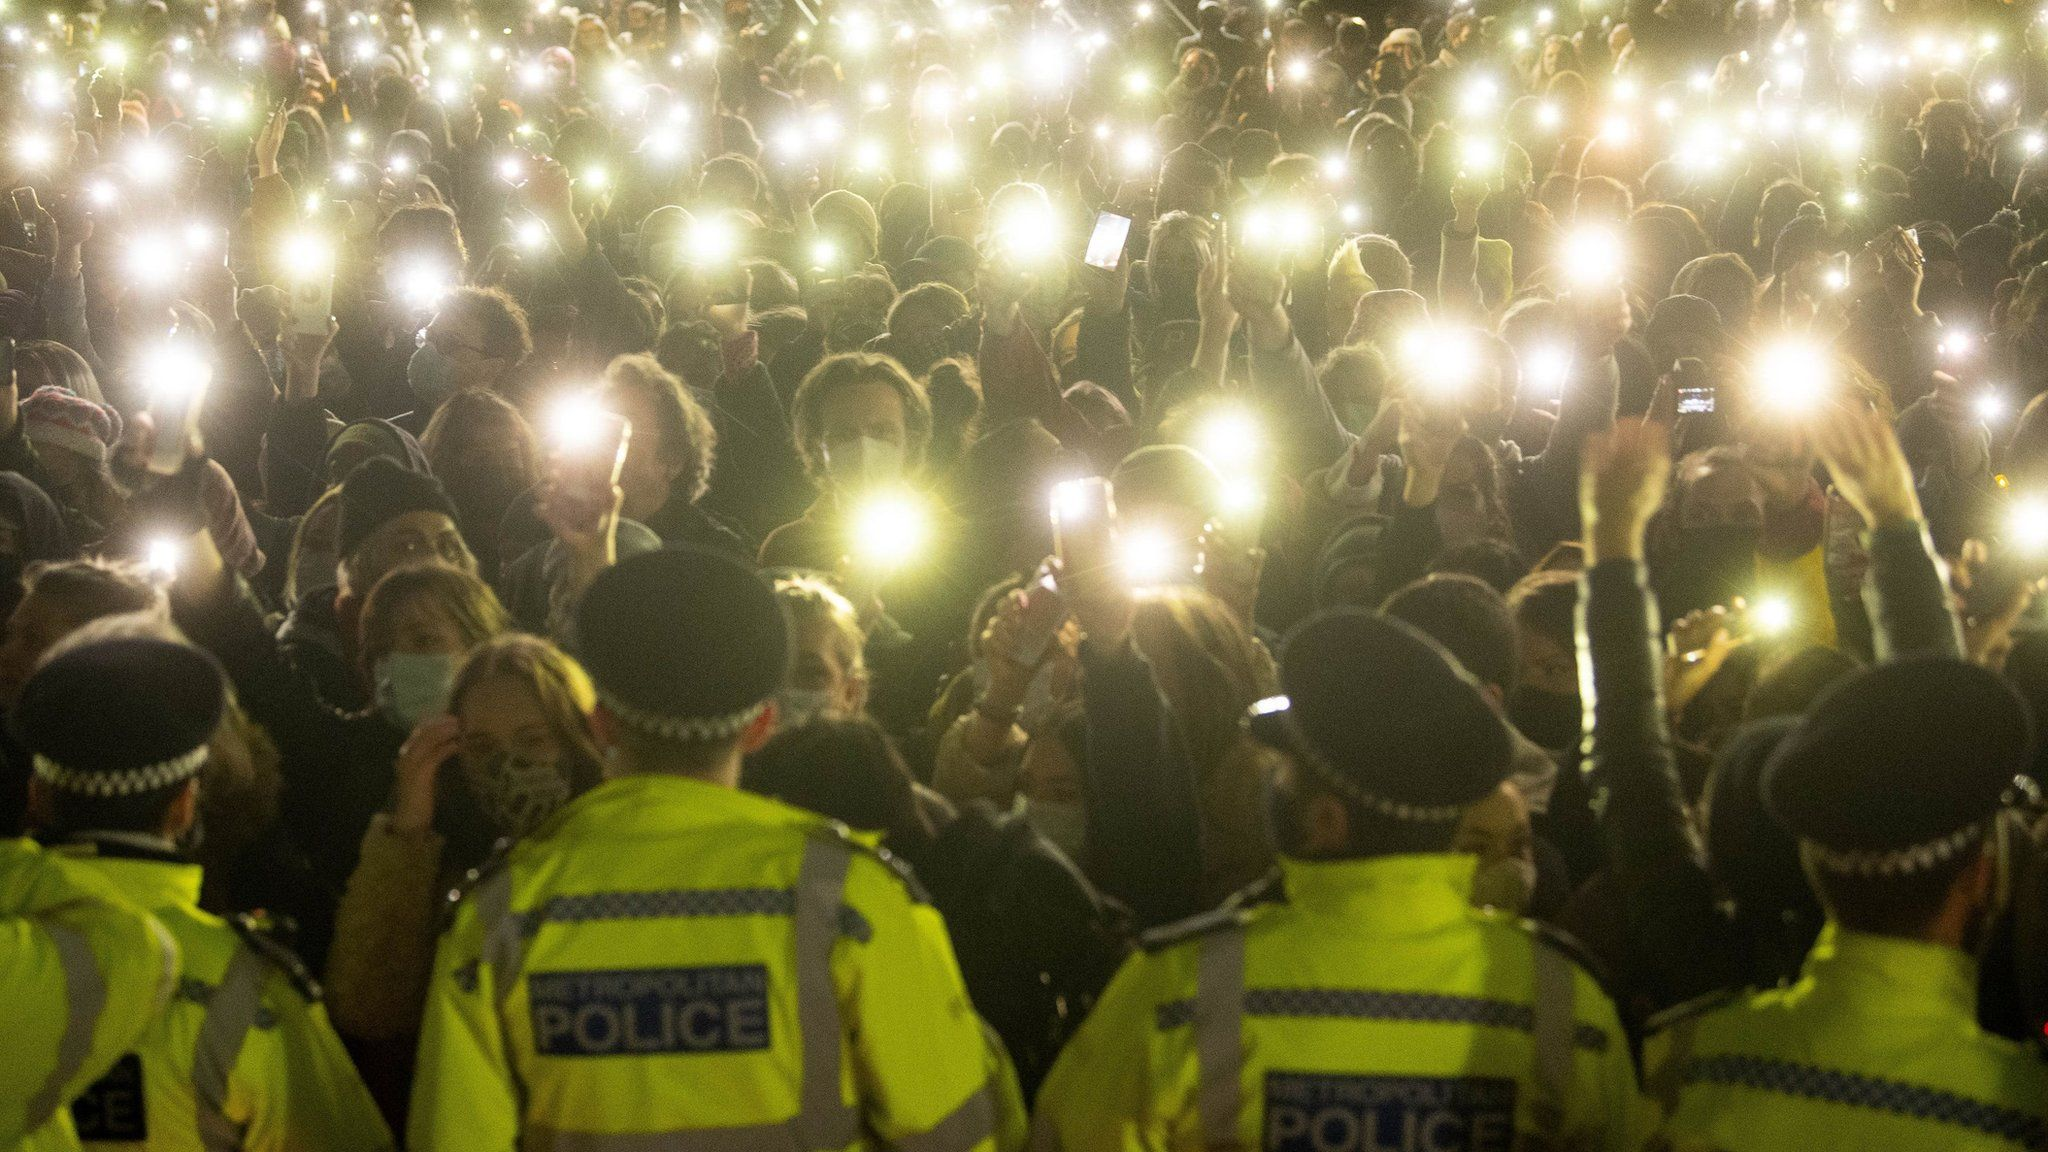 People at Saturday's vigil hold up torches and mobile phones in front of a line of uniformed police officers